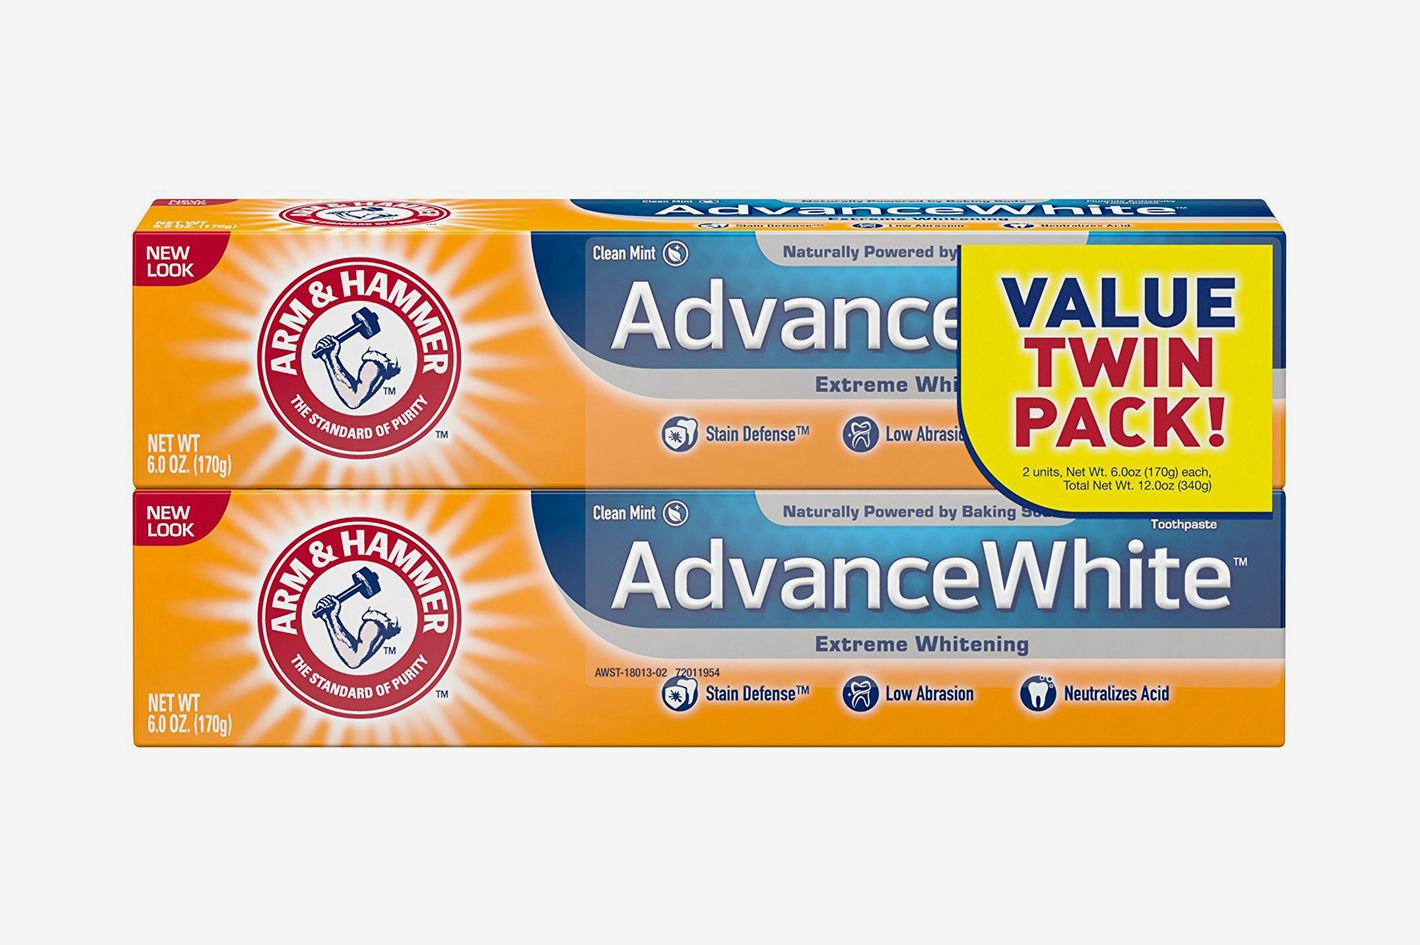 Arm & Hammer Advance White Extreme Whitening Toothpaste, 6 oz Twin Pack